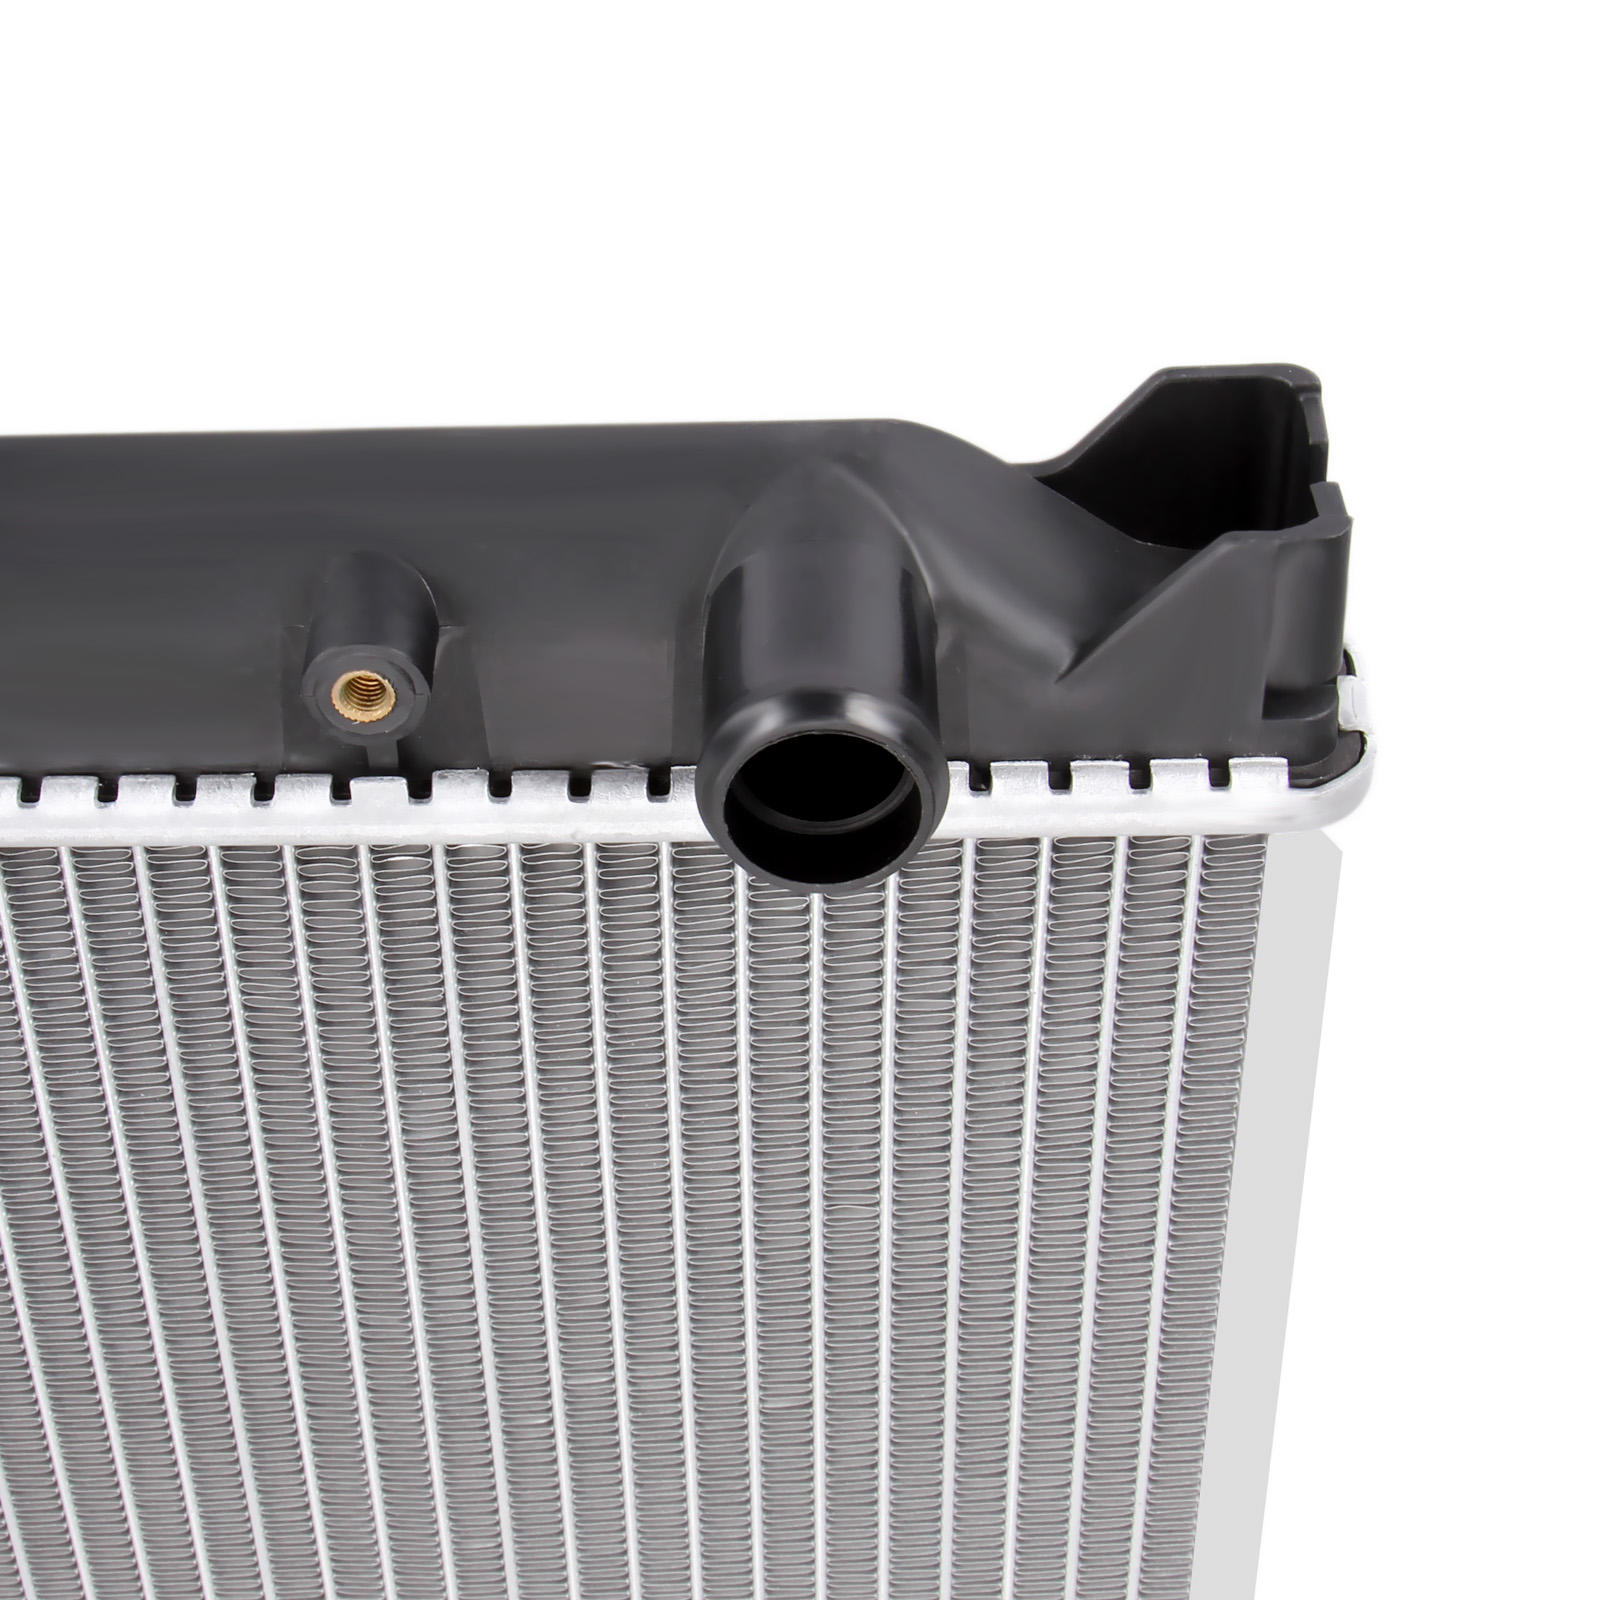 Radiator for 1996-1997 Geo Tracker 1996-1998 for Suzuki X-90 1.6 L4 AT/MT Free Ship